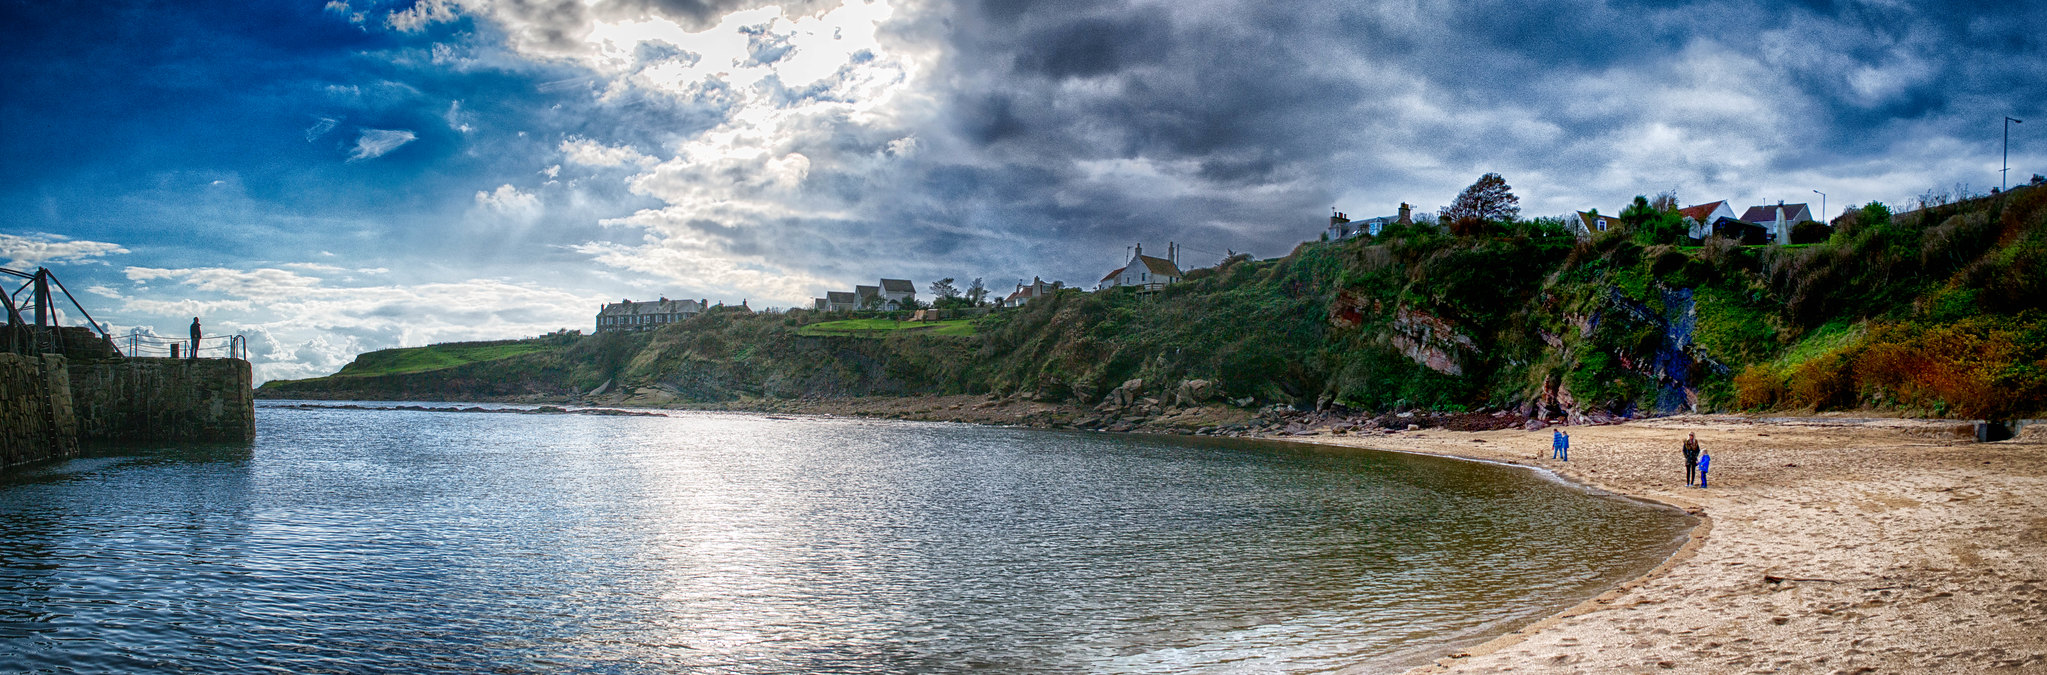 Untitled_Panorama1crail_HDR.jpg